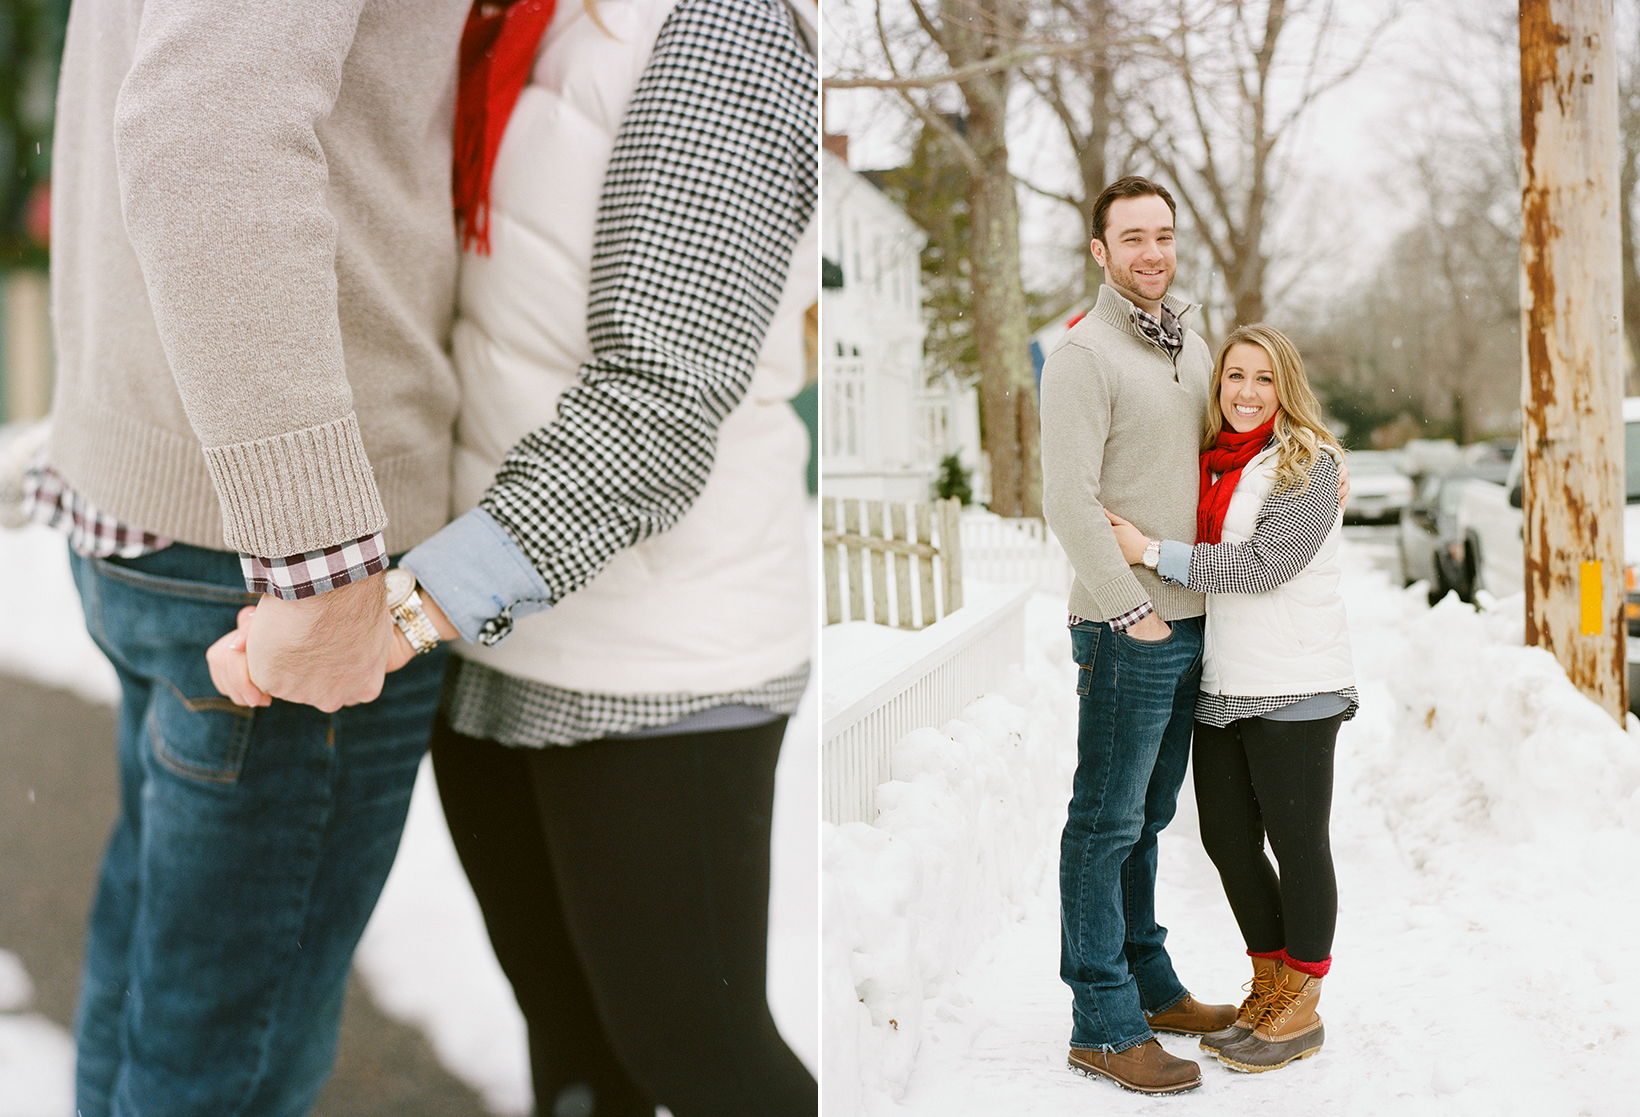 Cape Cod wedding blog photo from Stacey Hedman | Photography about Winter Love in Sandwich